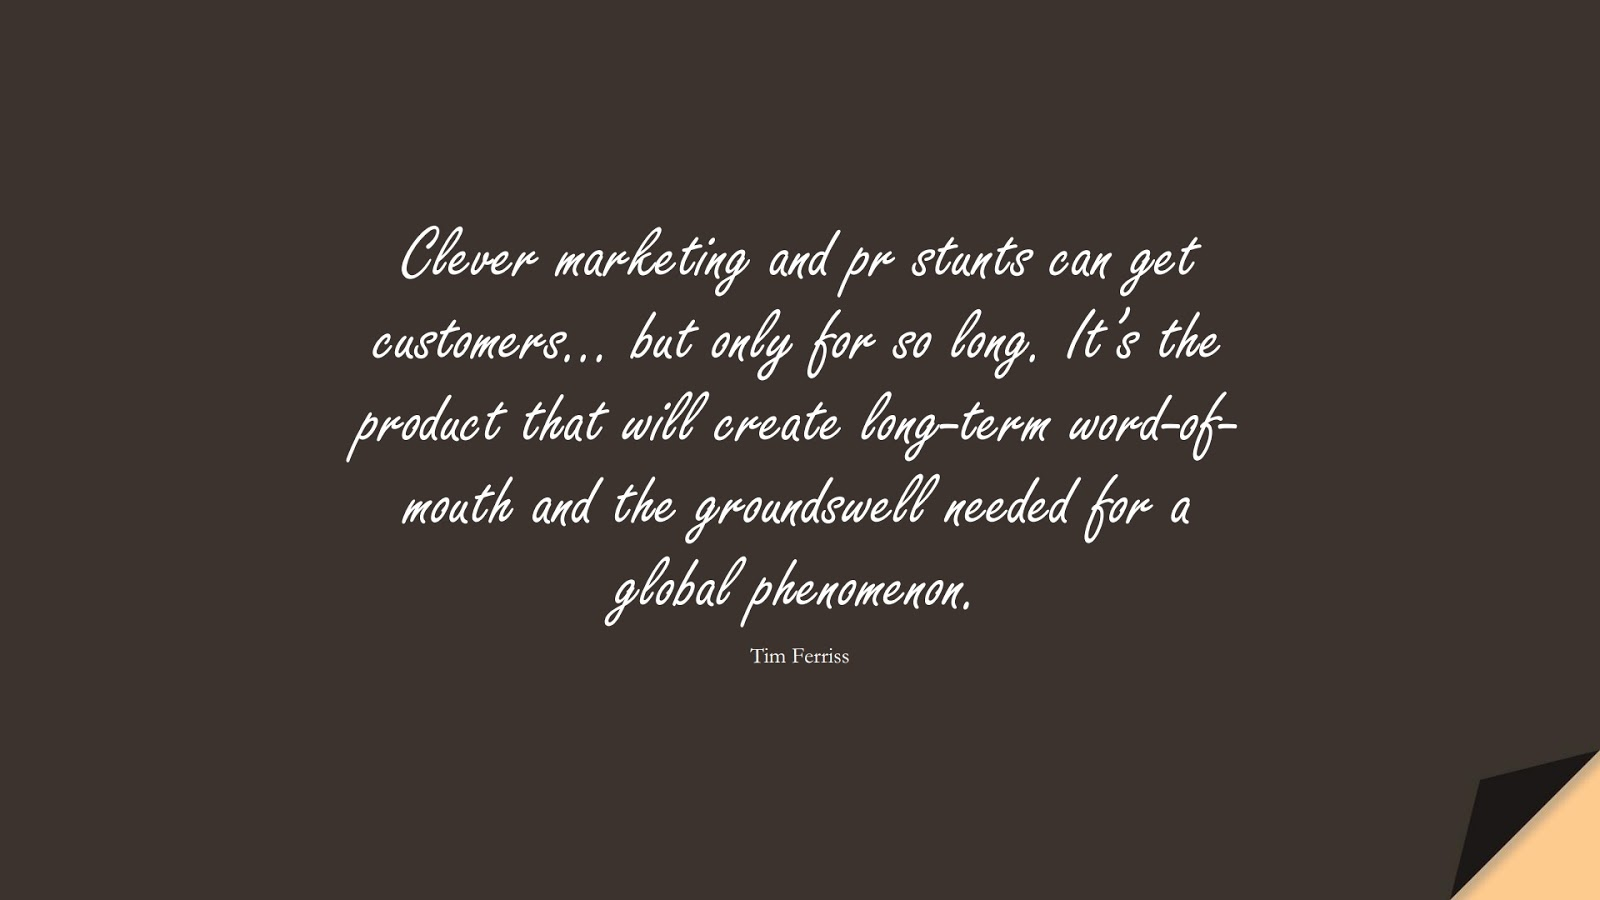 Clever marketing and pr stunts can get customers… but only for so long. It's the product that will create long-term word-of-mouth and the groundswell needed for a global phenomenon. (Tim Ferriss);  #TimFerrissQuotes